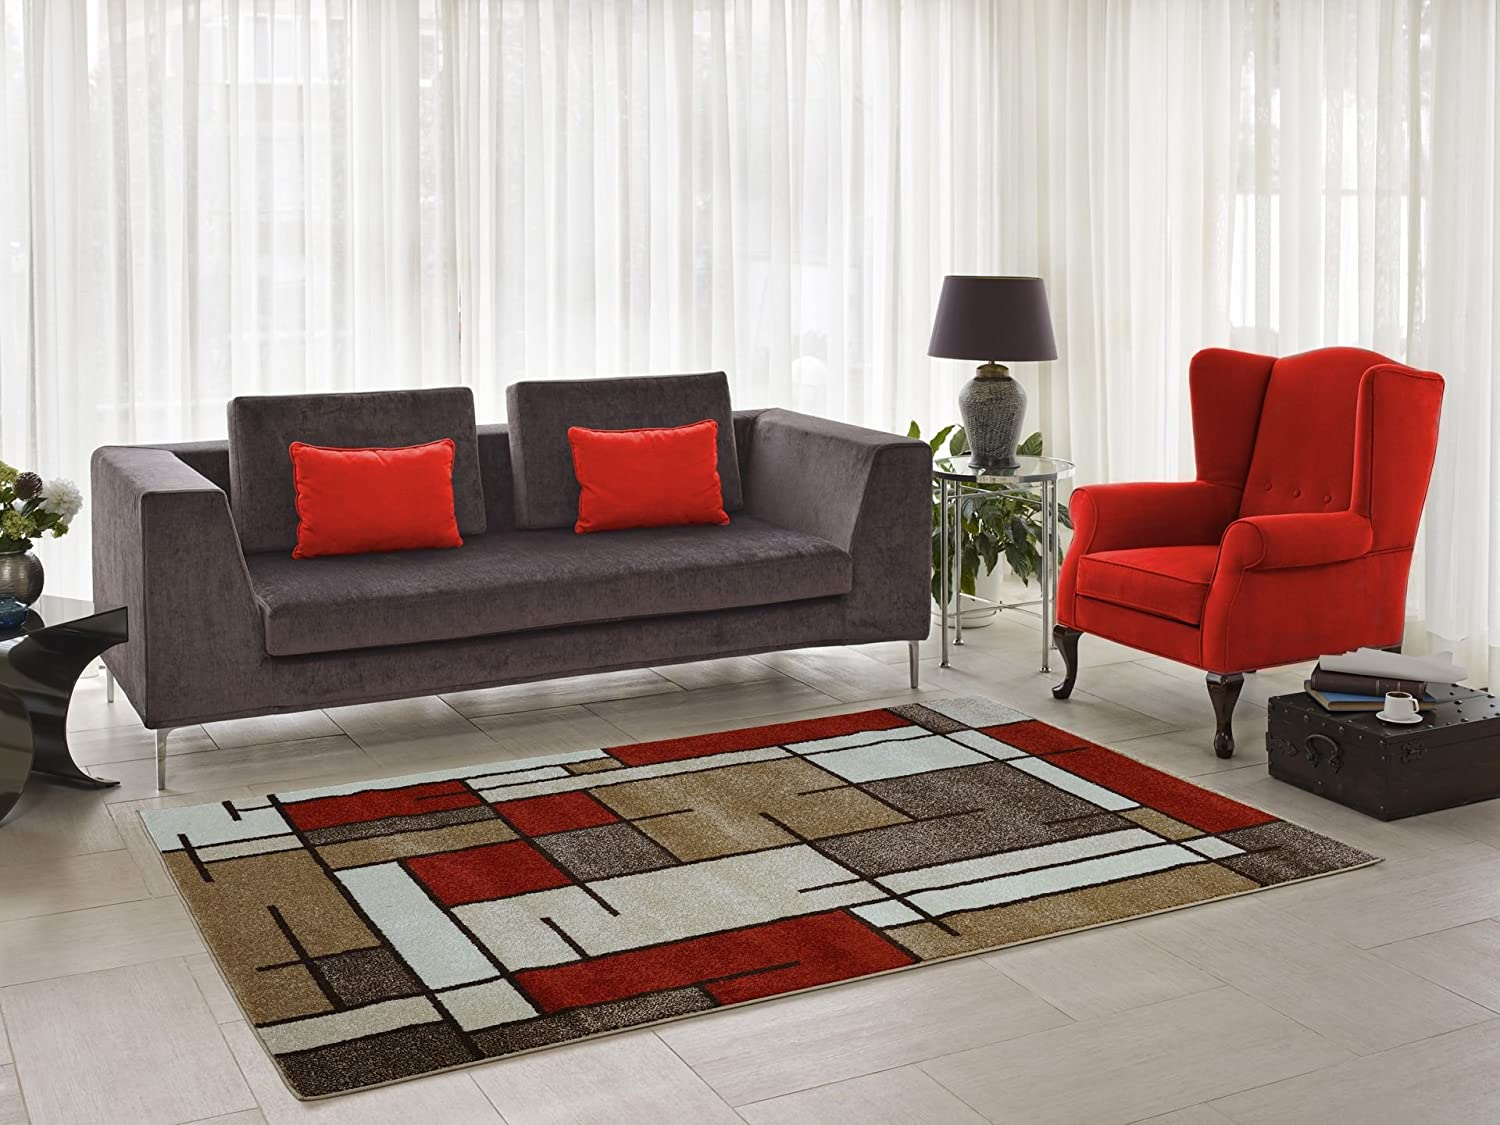 Joy Beige Cream Area Rug Modern Contemporary Geometric Red/Orange White Area Rug Living Room (2'7 x 4'11) Ladole Rugs